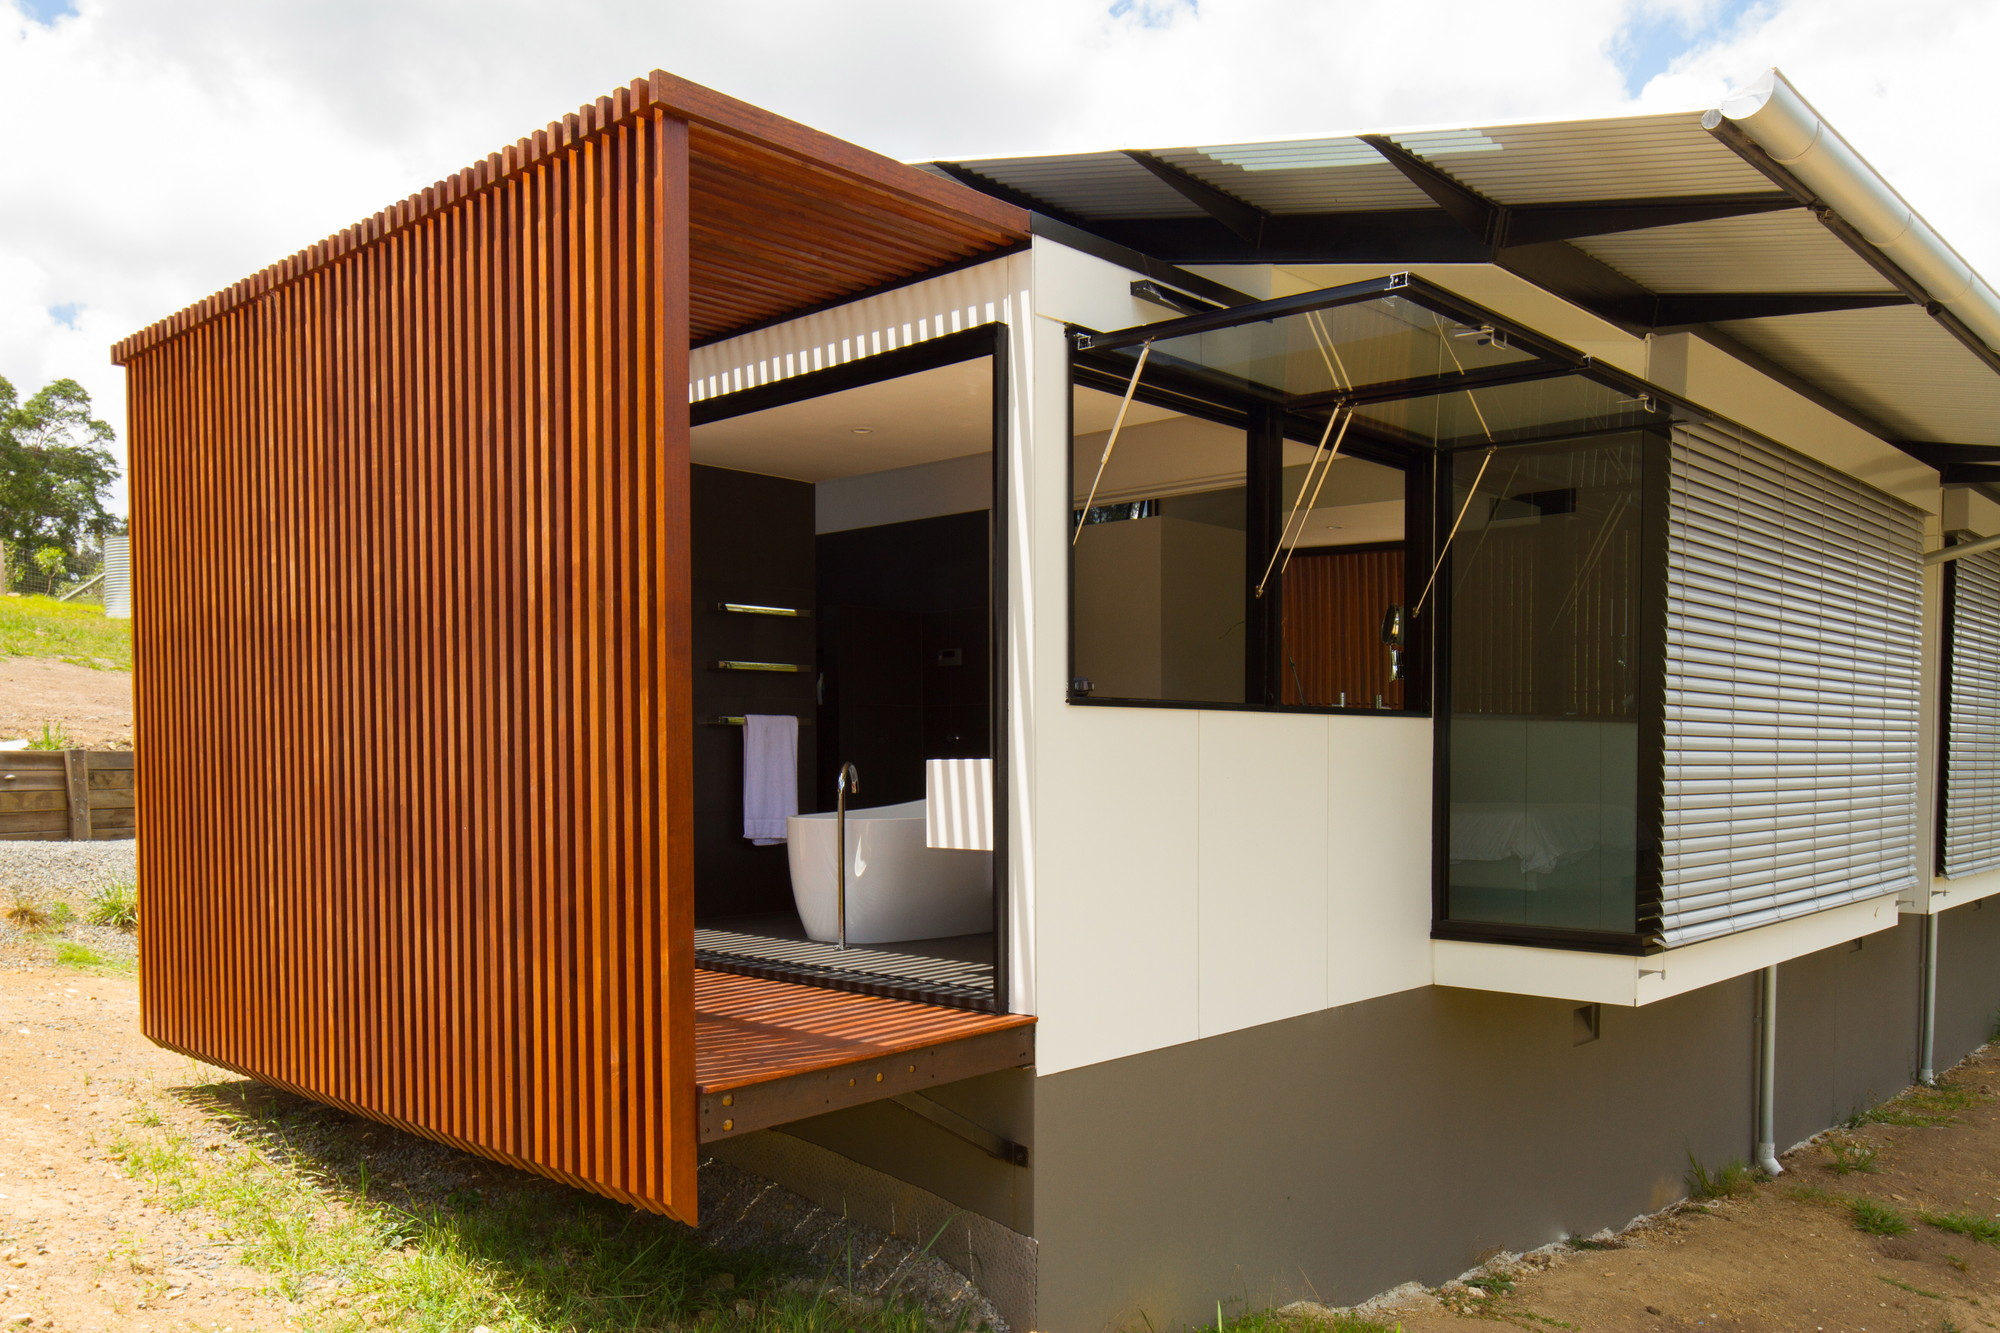 Wallaby Lane House by Robinson Architects (via Lunchbox Architect)